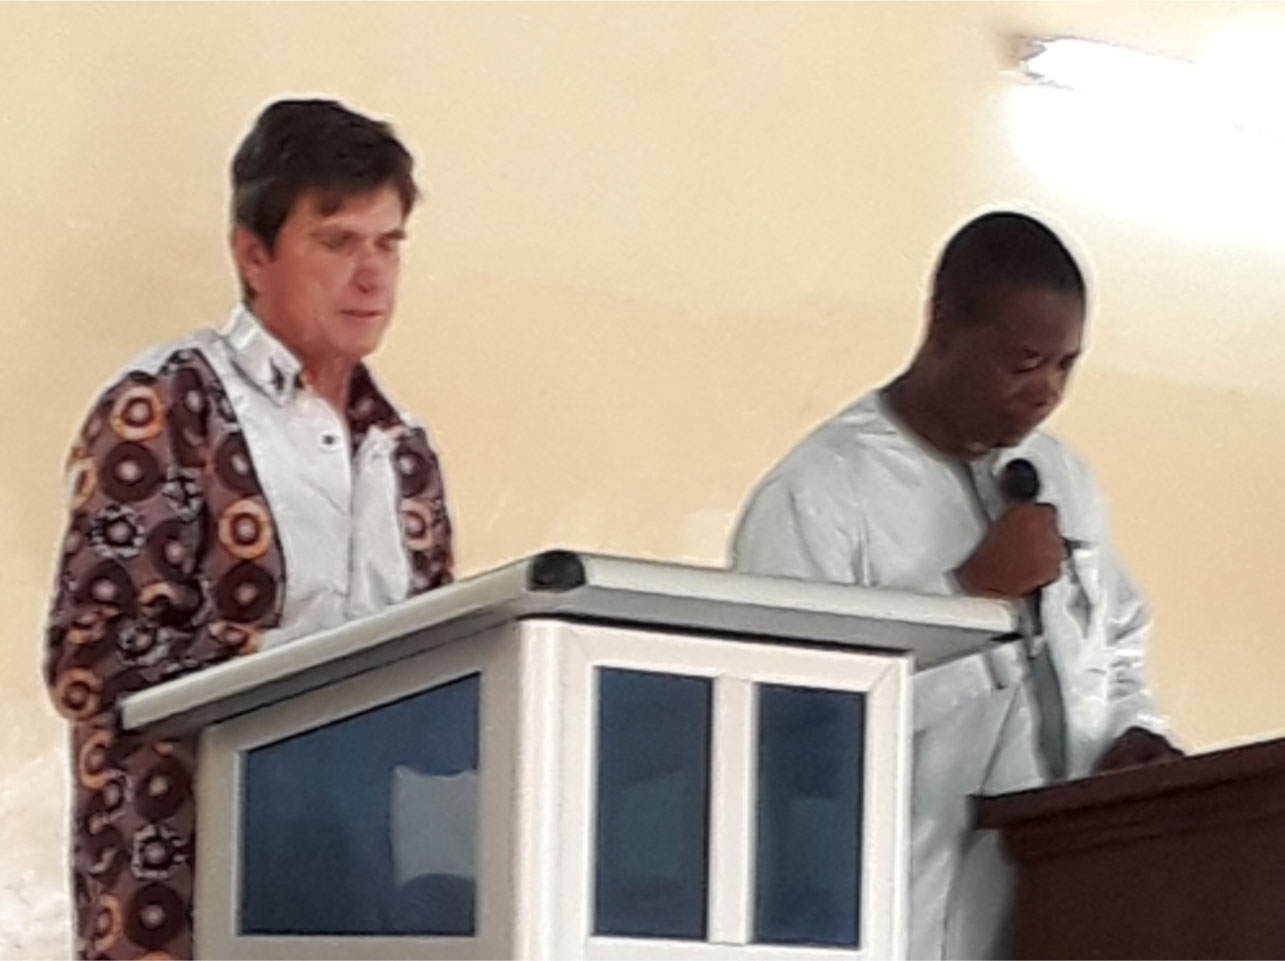 Jim preaching at our congregation, named Bokoki congregation, with Judge Issaka Moussa translating into Hausa.